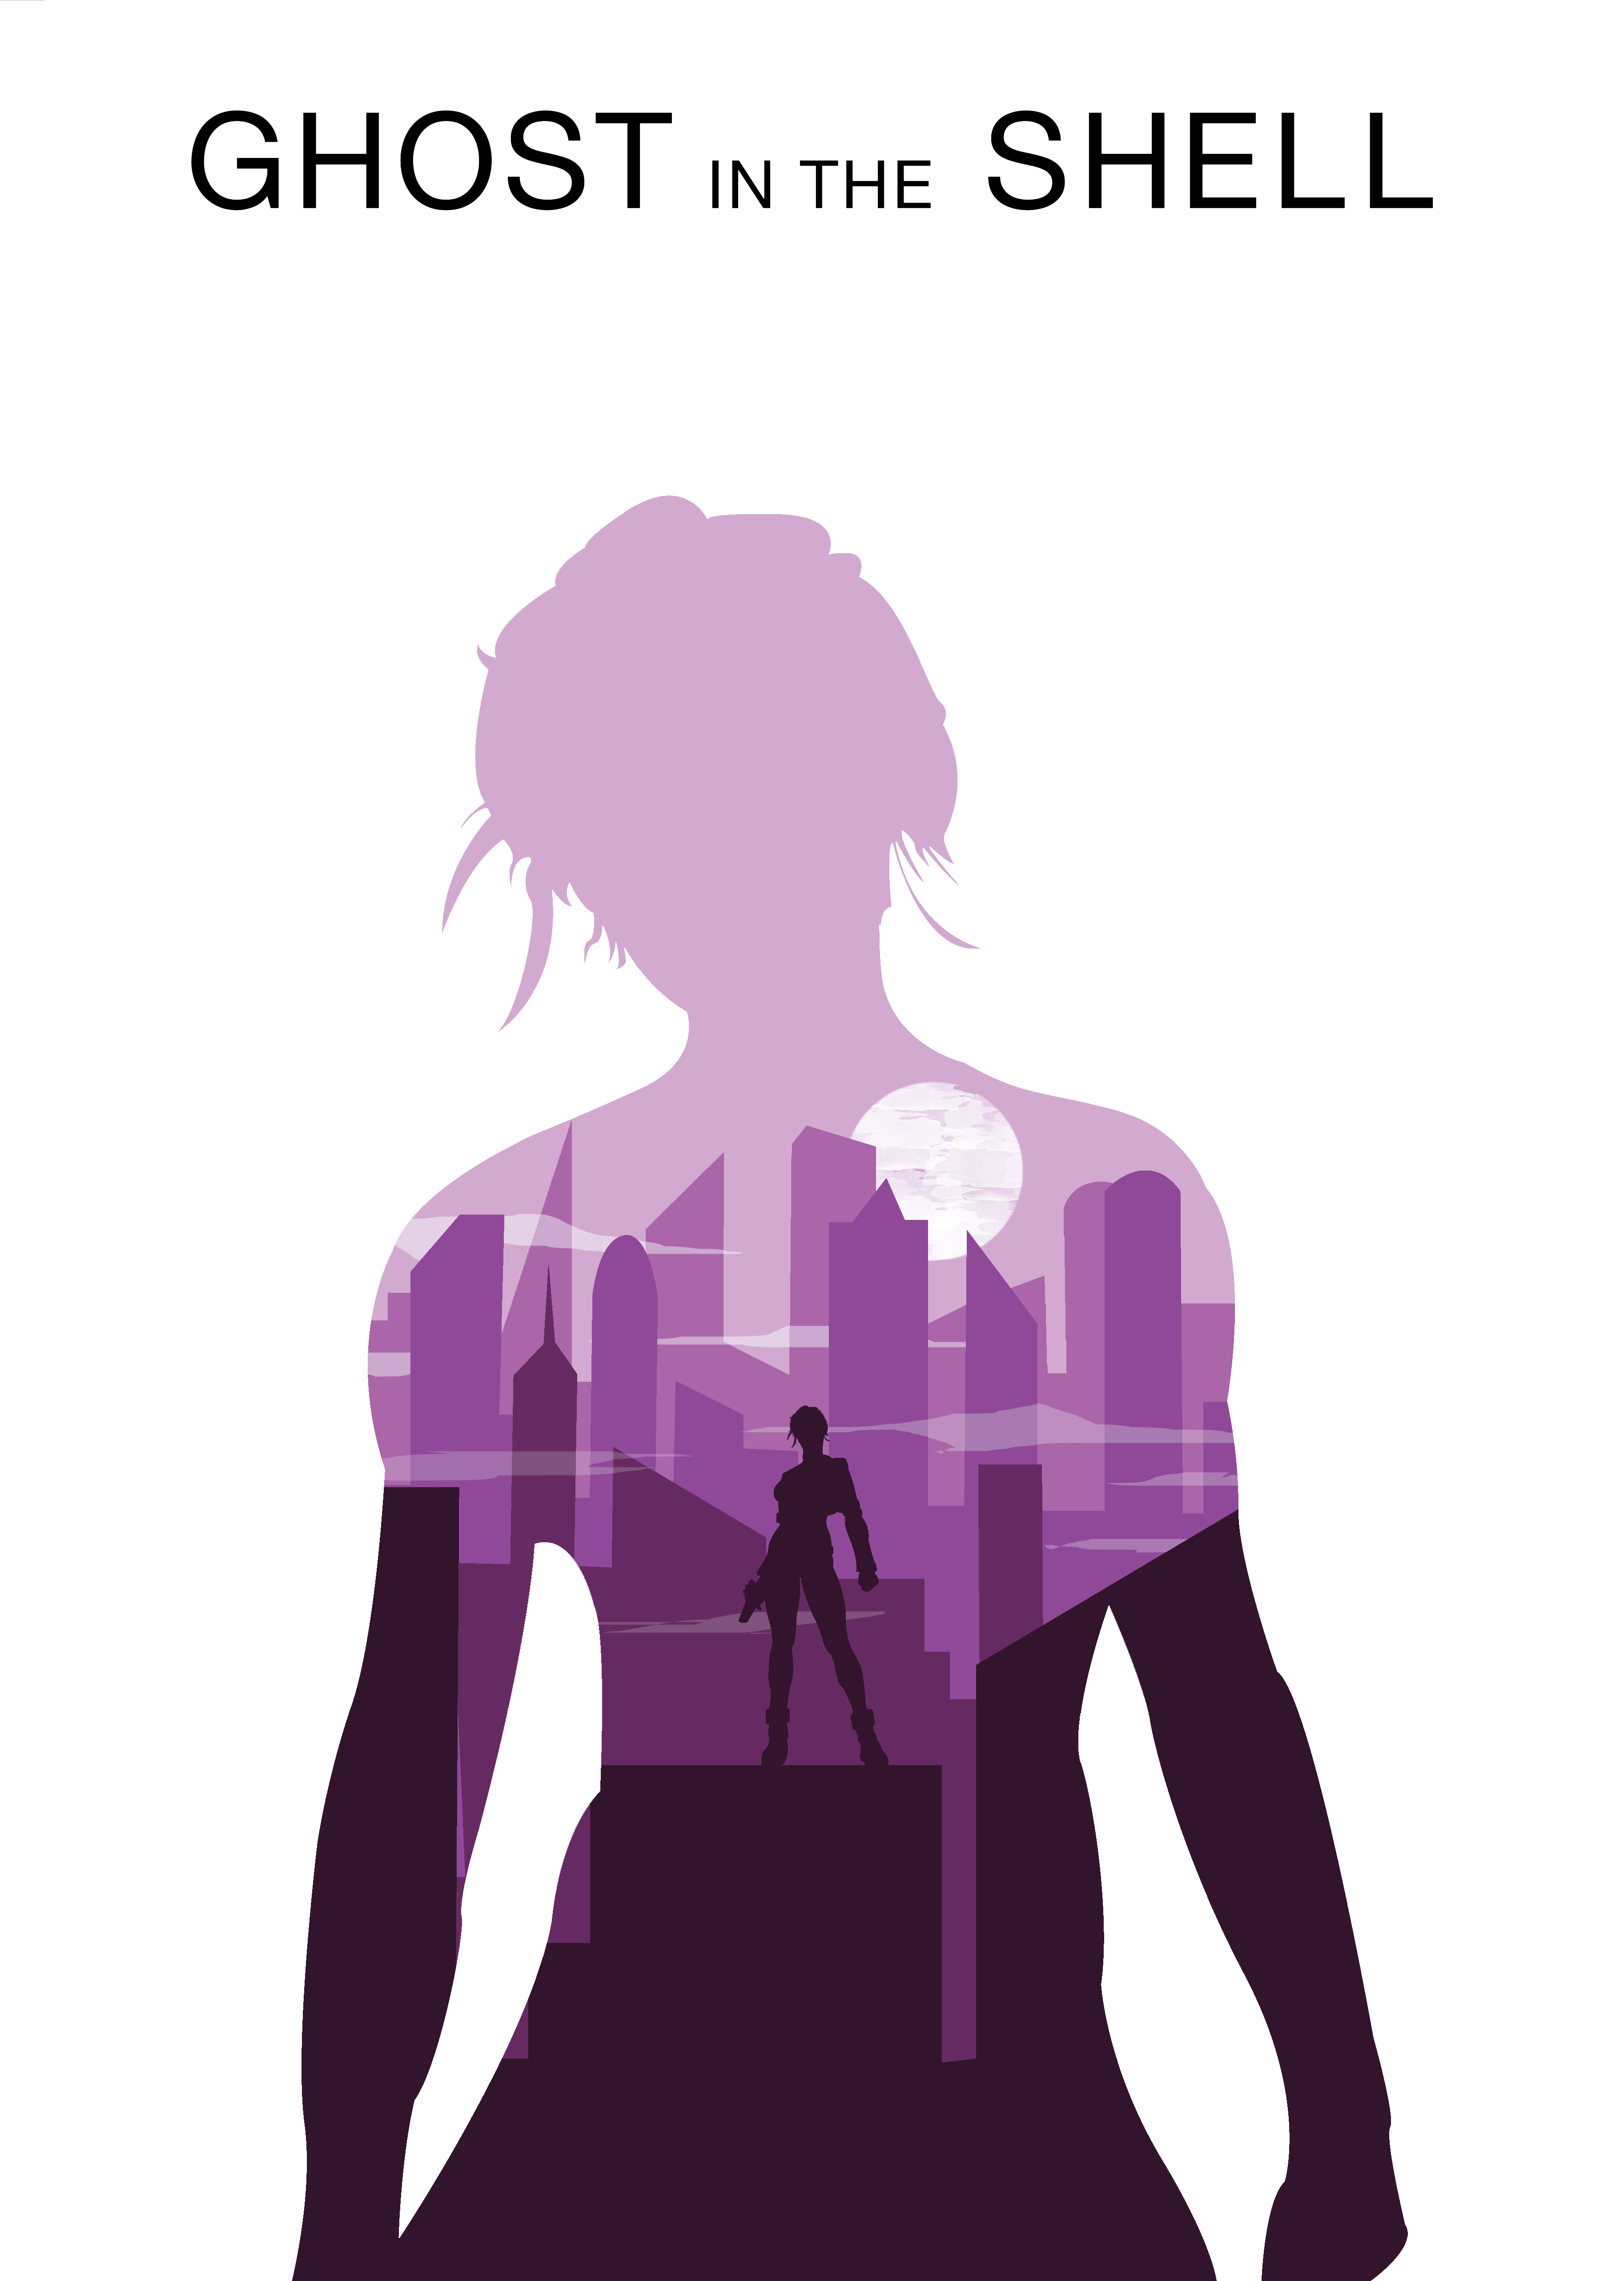 Ghost In The Shell Minimalist Movie Poster Copyright C Theartlessasylum 2015 Ghost In The Shell Film Posters Minimalist Minimalist Movie Poster